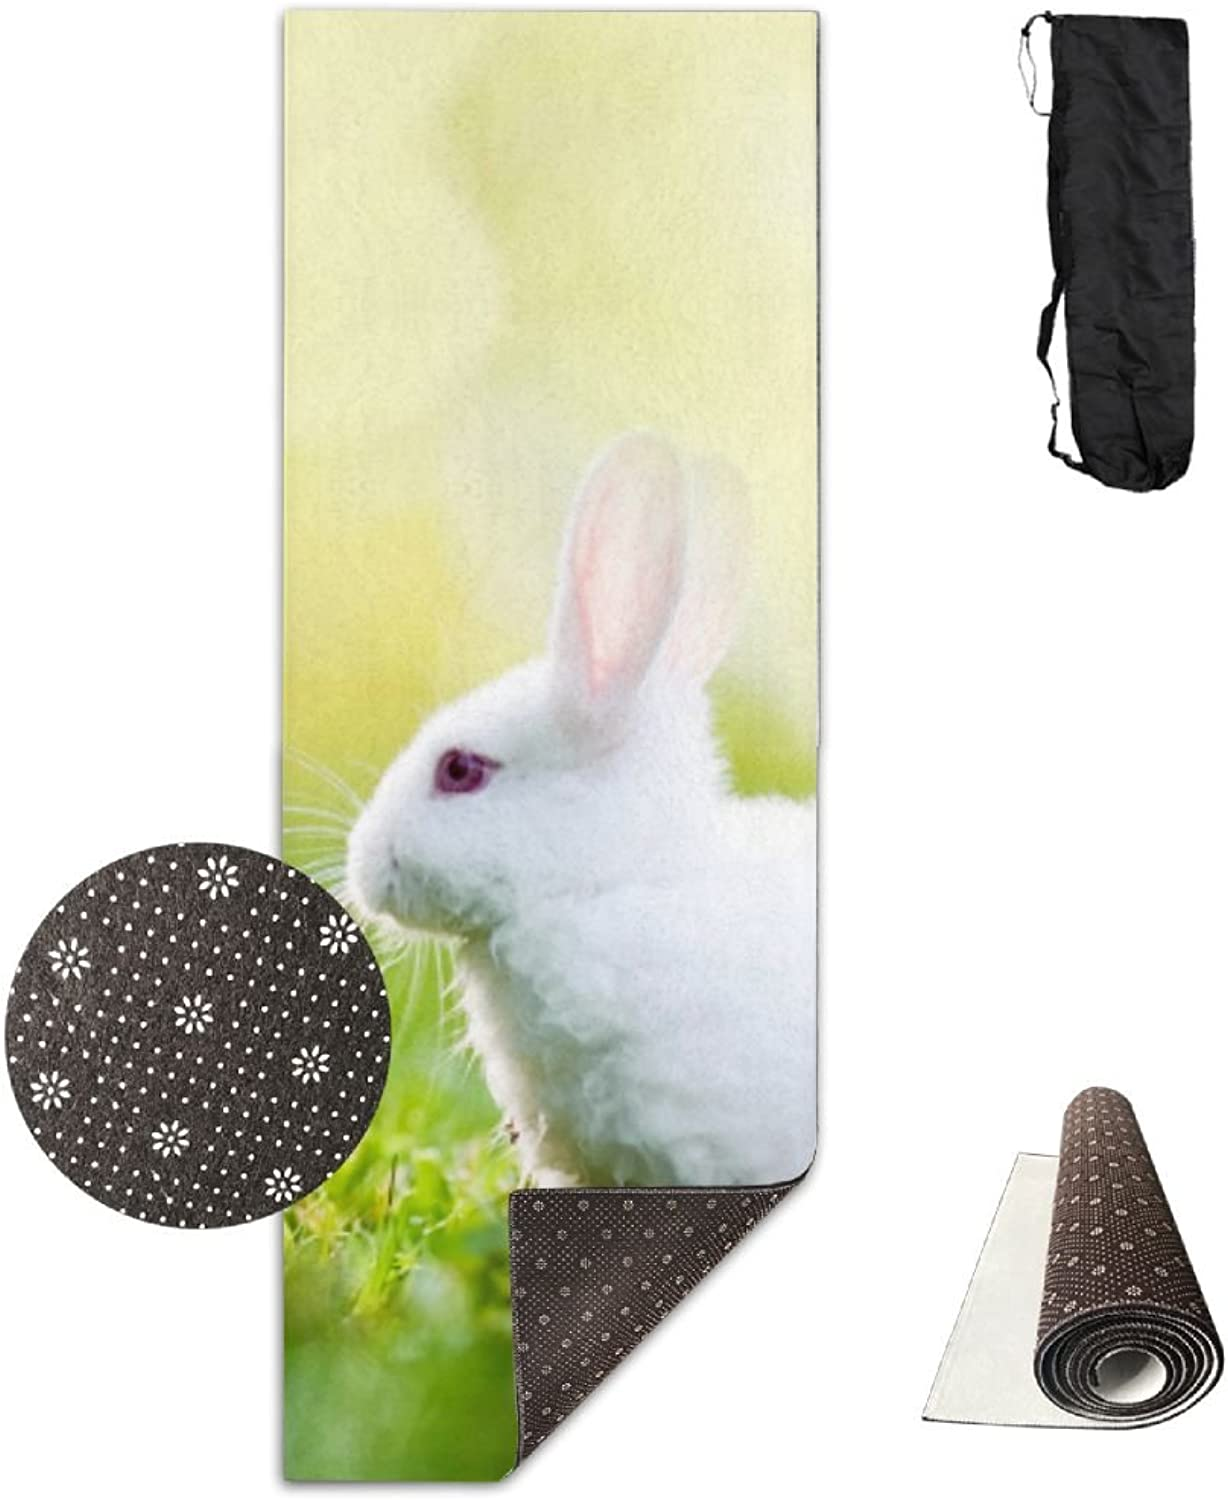 Gym Mat Grass Rabbit Fitness High Density AntiTear Exercise Yoga Mat With Carrying Bag For Exercise,Pilates